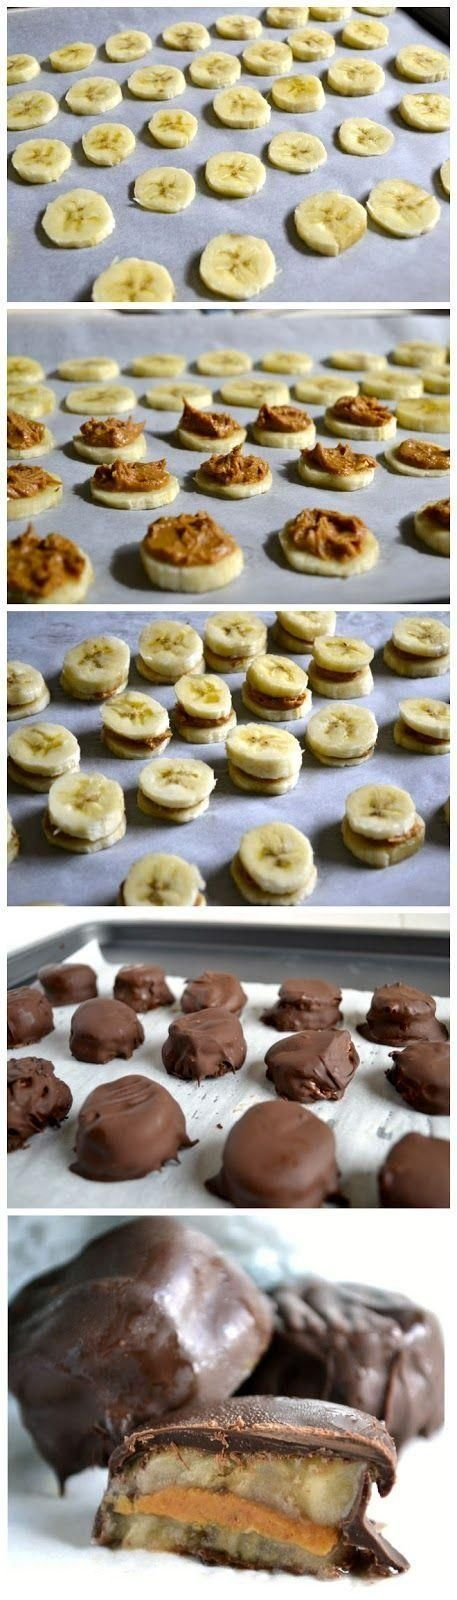 Chocolate Covered Frozen Banana and Peanut Butter Bites - Love with recipe by titi1231